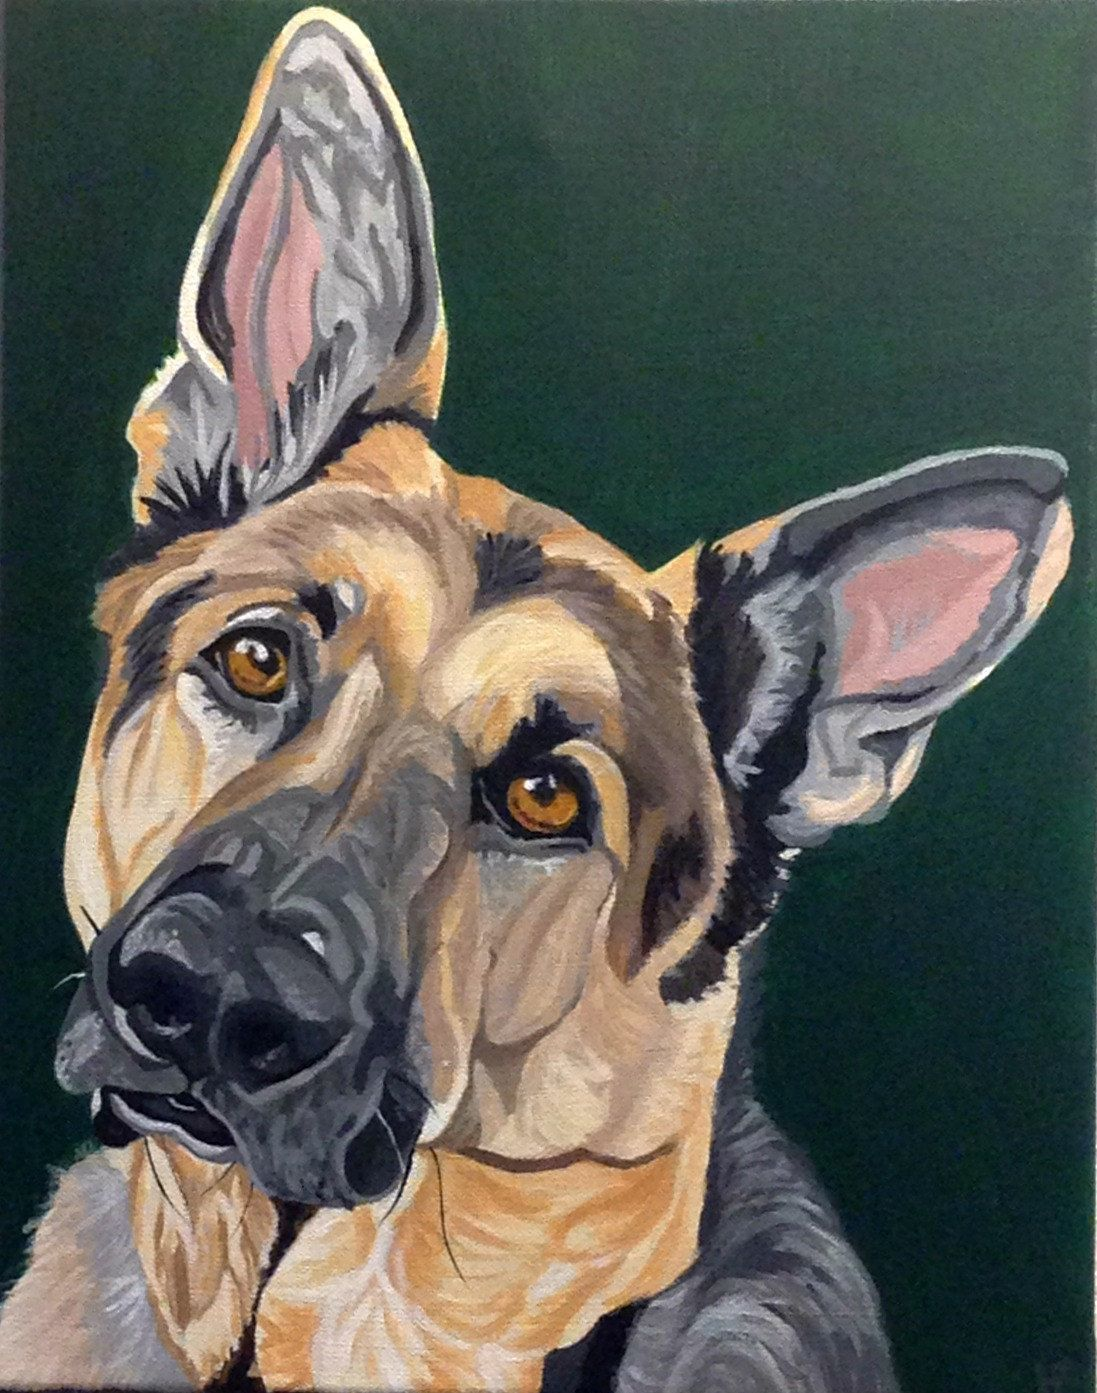 1bd9ef8cd329 Hand Painted Custom Pet Portrait in Acrylics on Canvas. *This is an example*